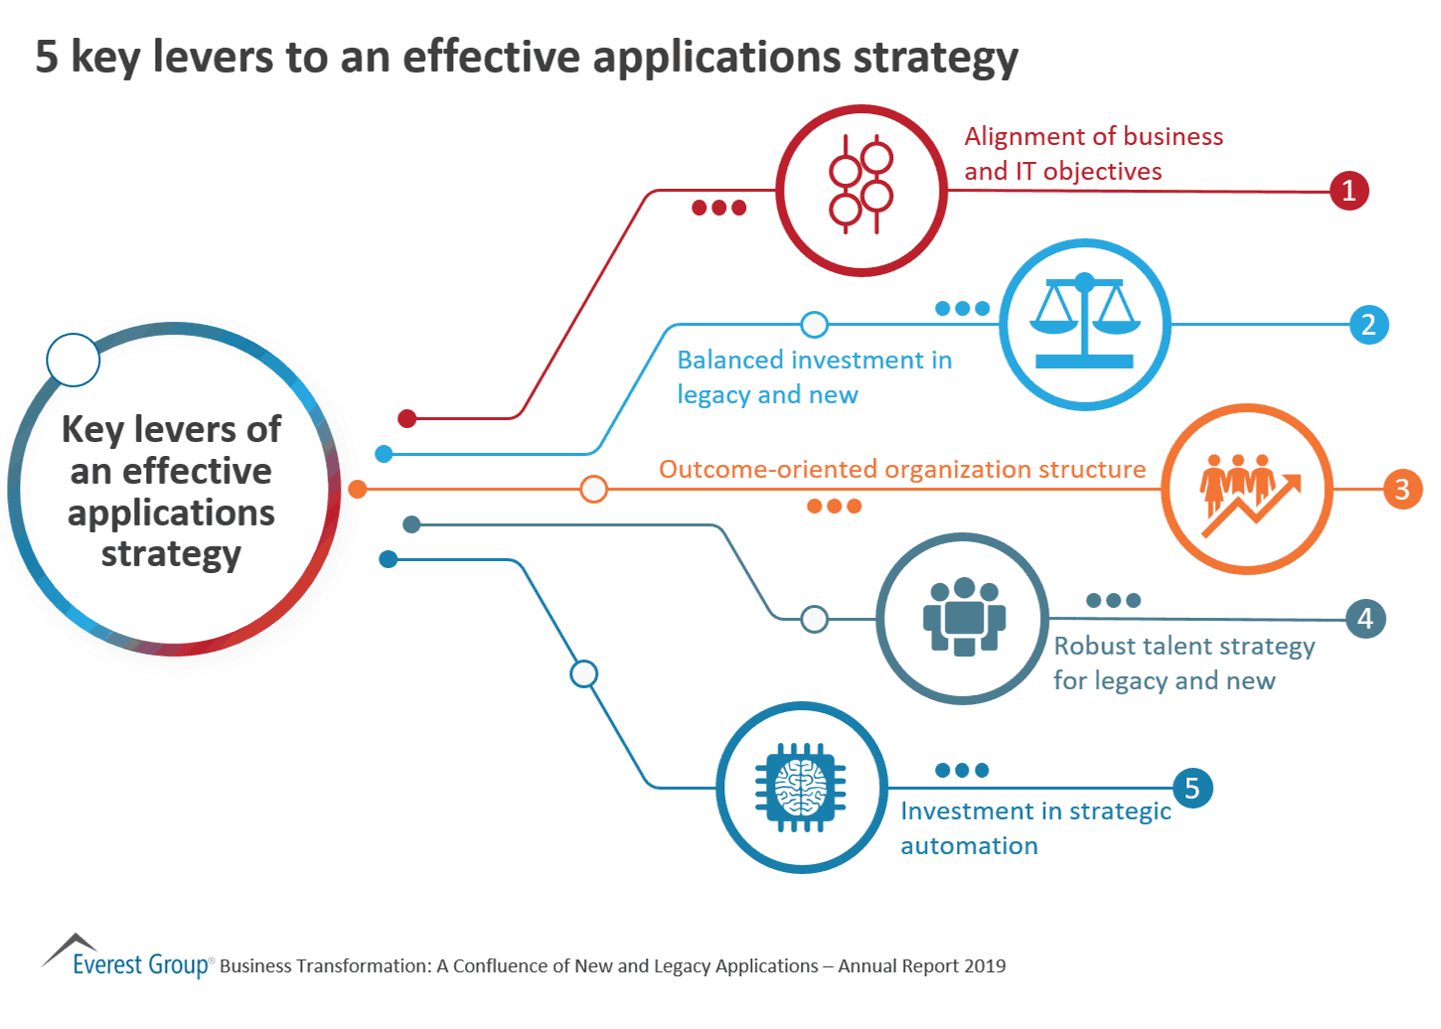 5 key levers to an effective applications strategy